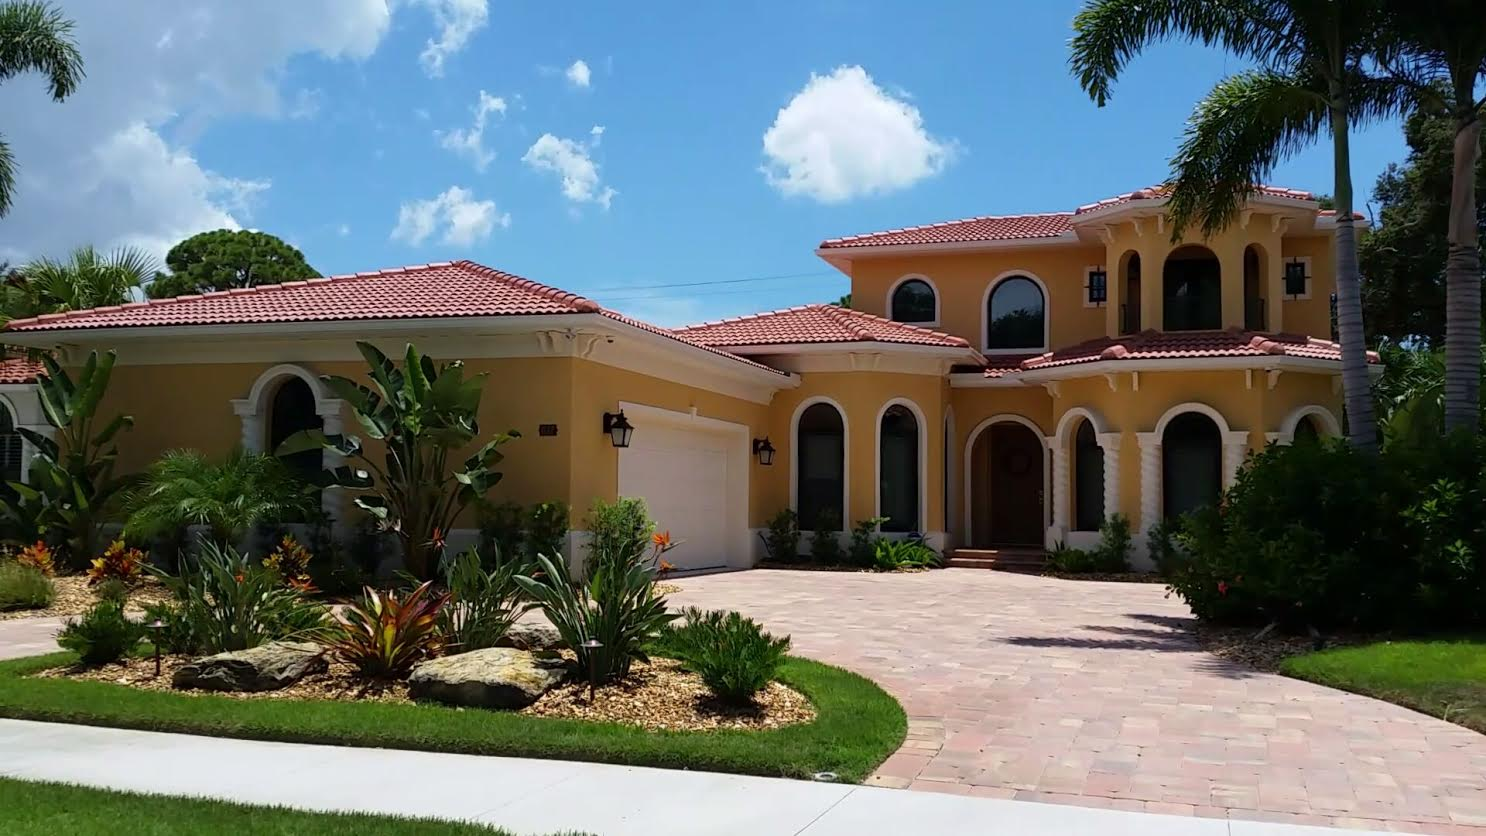 Houses for sale in sarasota fl house plan 2017 for House builders in florida